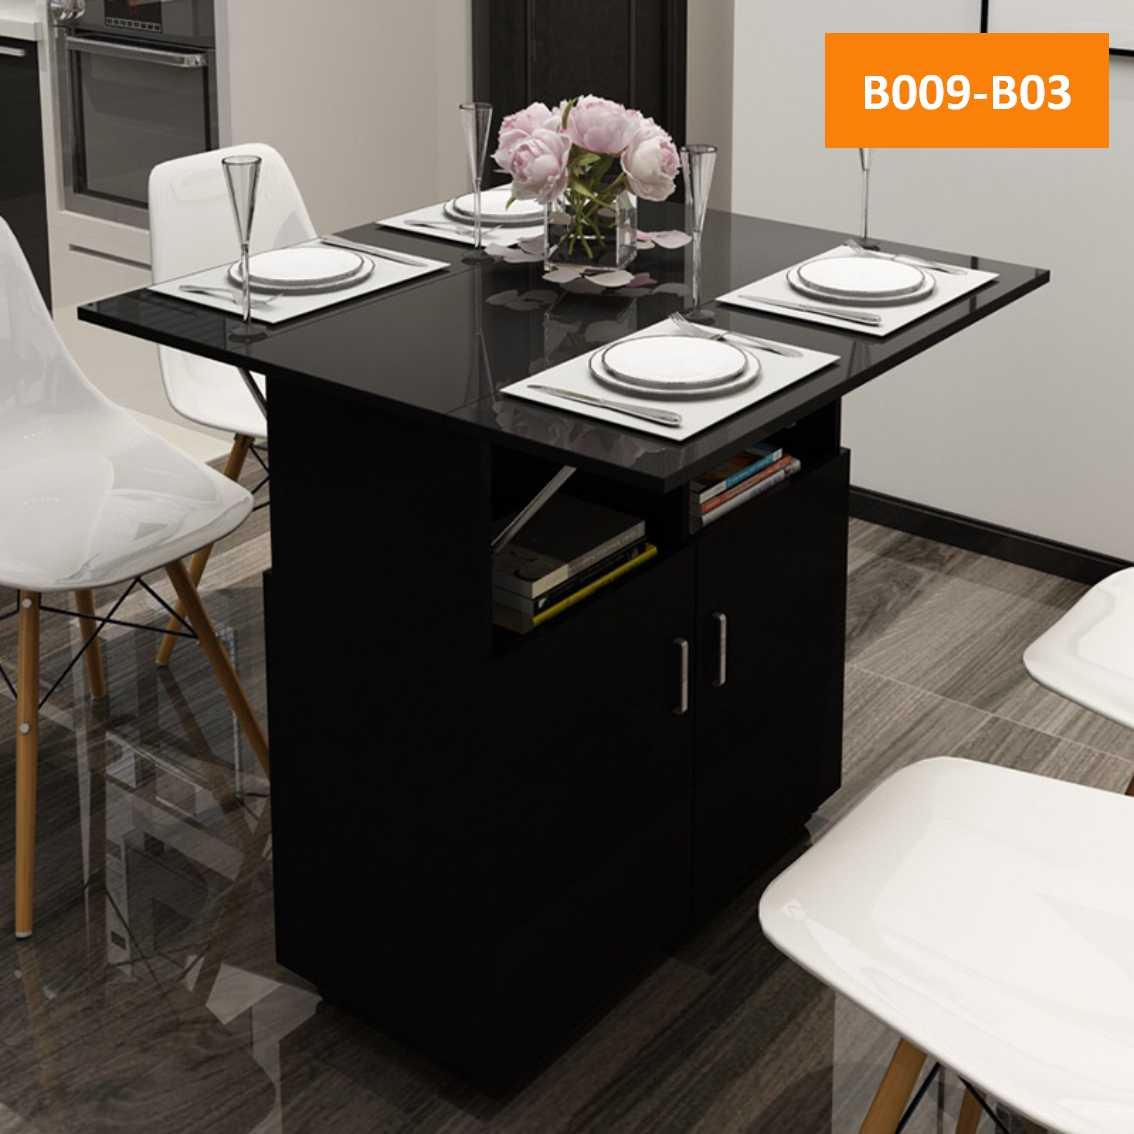 Dinning table/Foldable table/Foldable dinning table